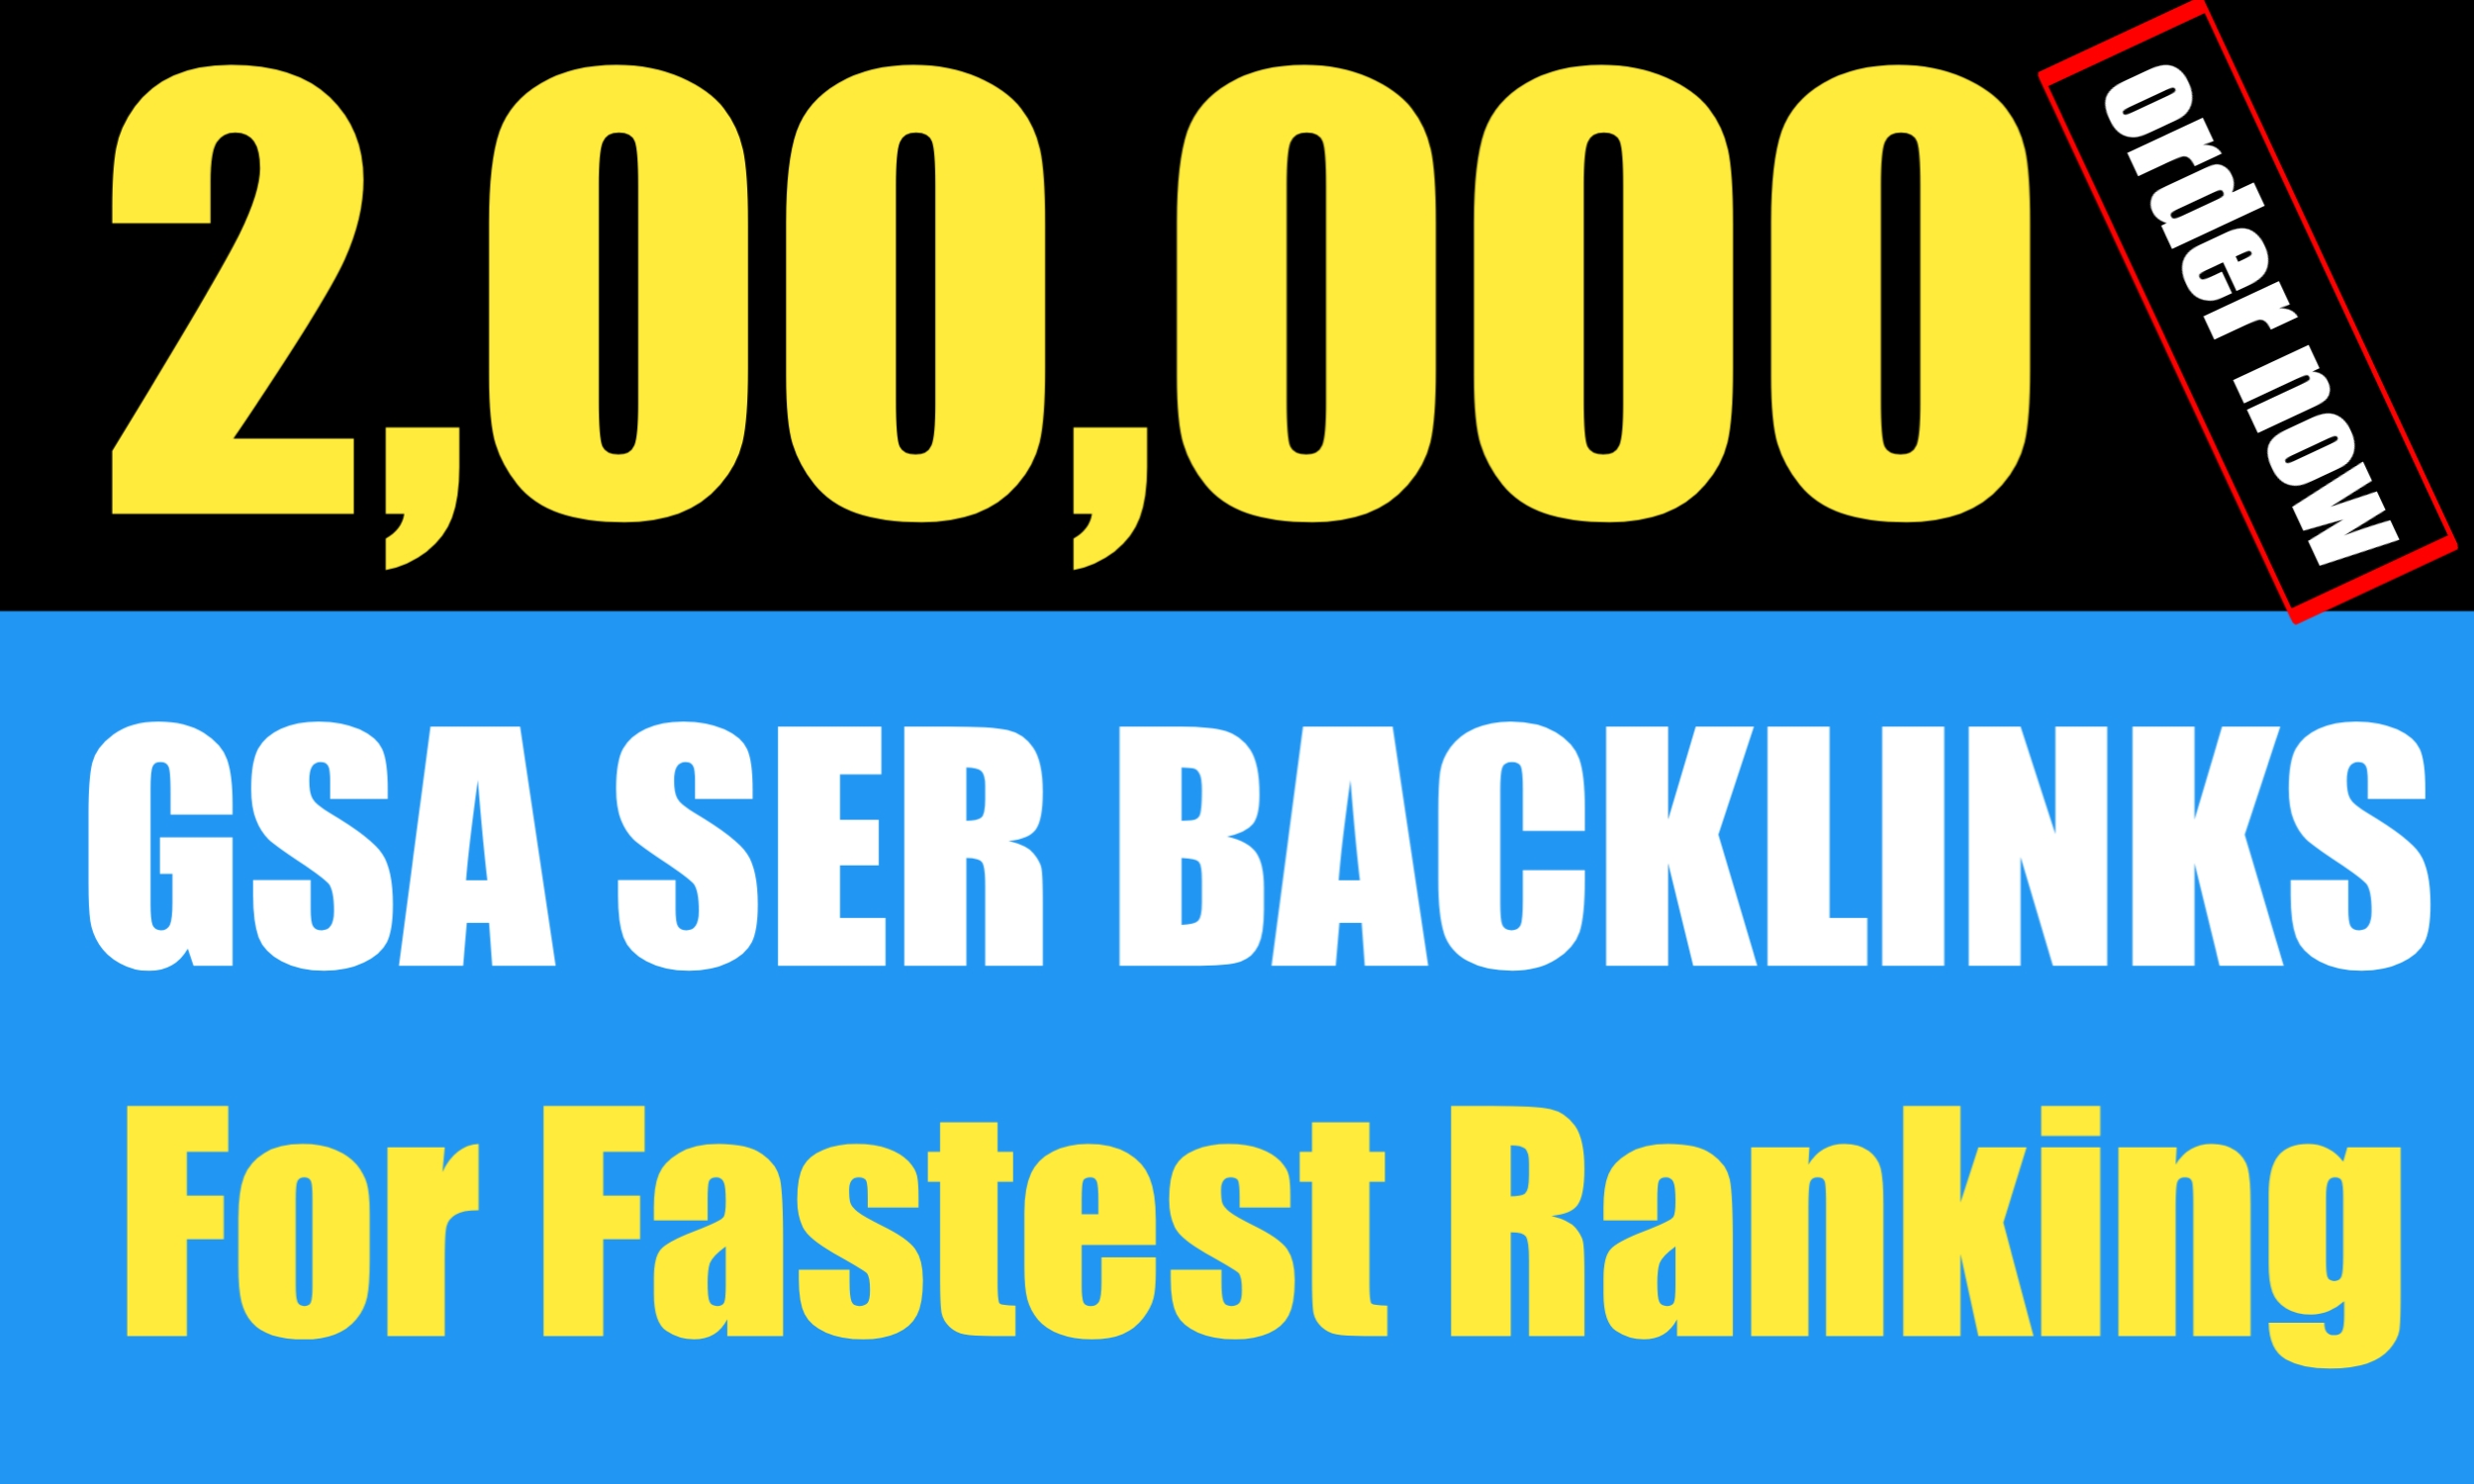 Build 200k GSA SER backlinks For Website Rankings